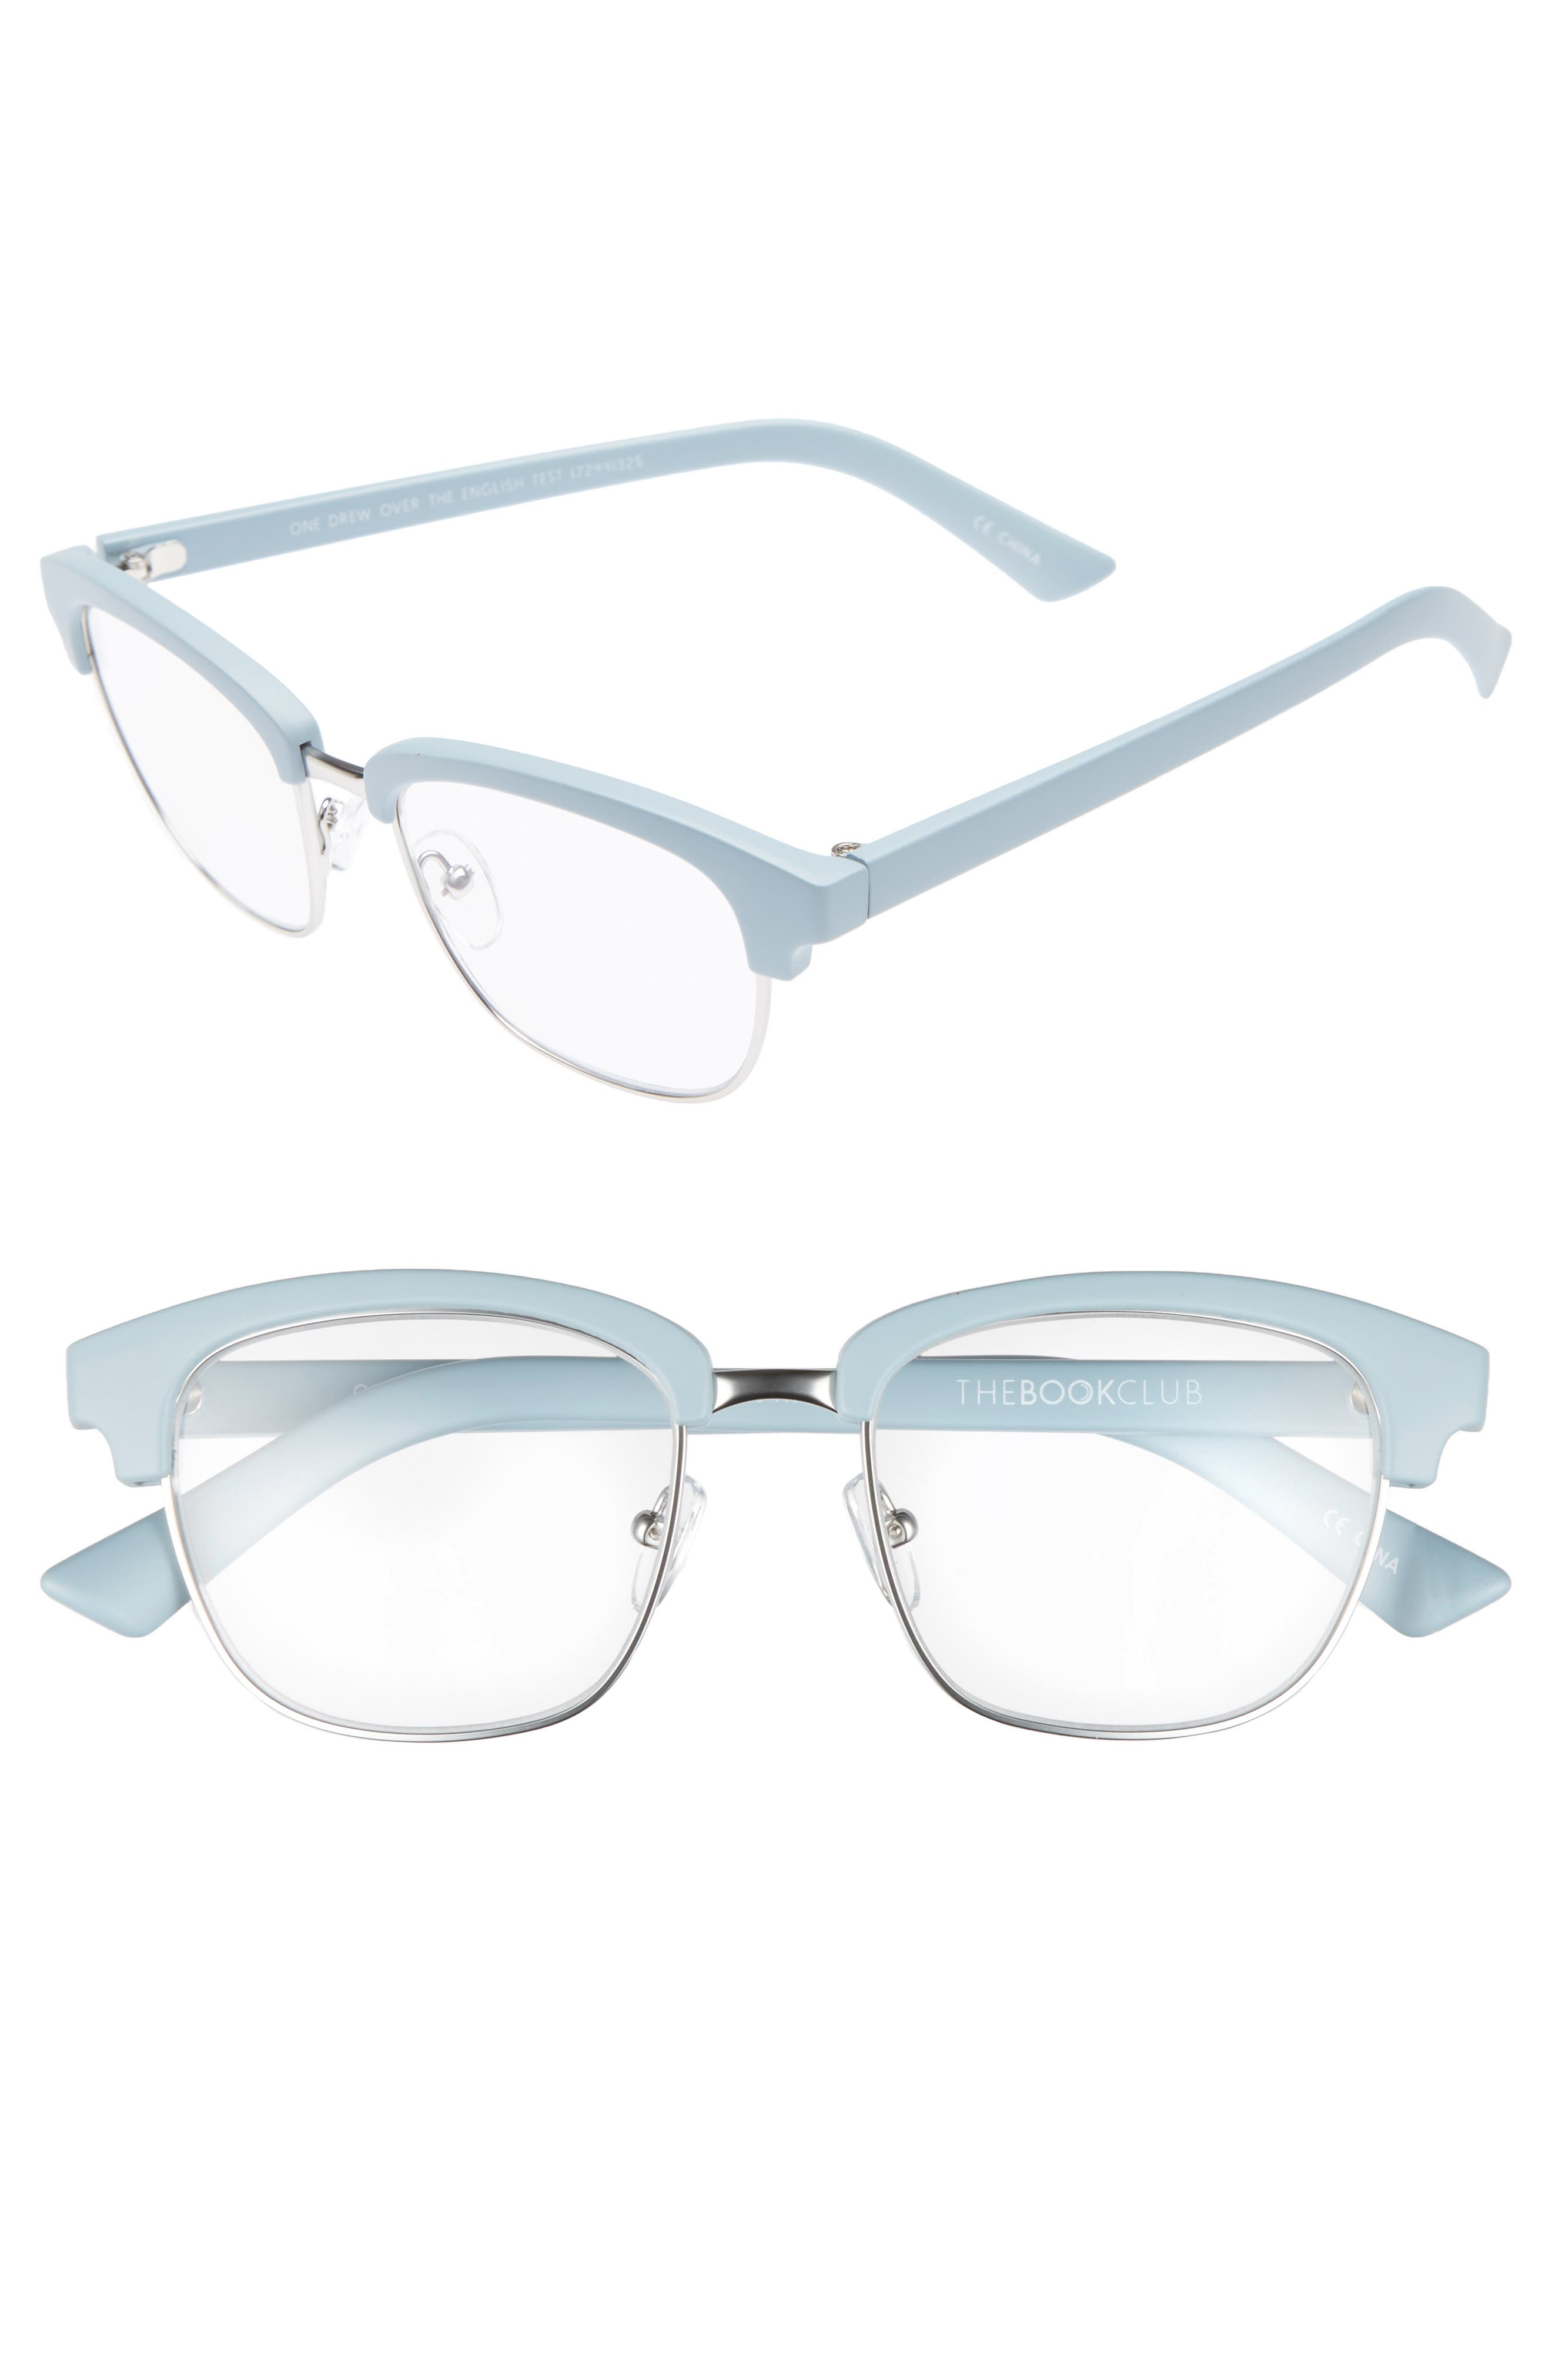 One Drew Over the English Test 52mm Reading Glasses,                         Main,                         color, Sky/ Silver